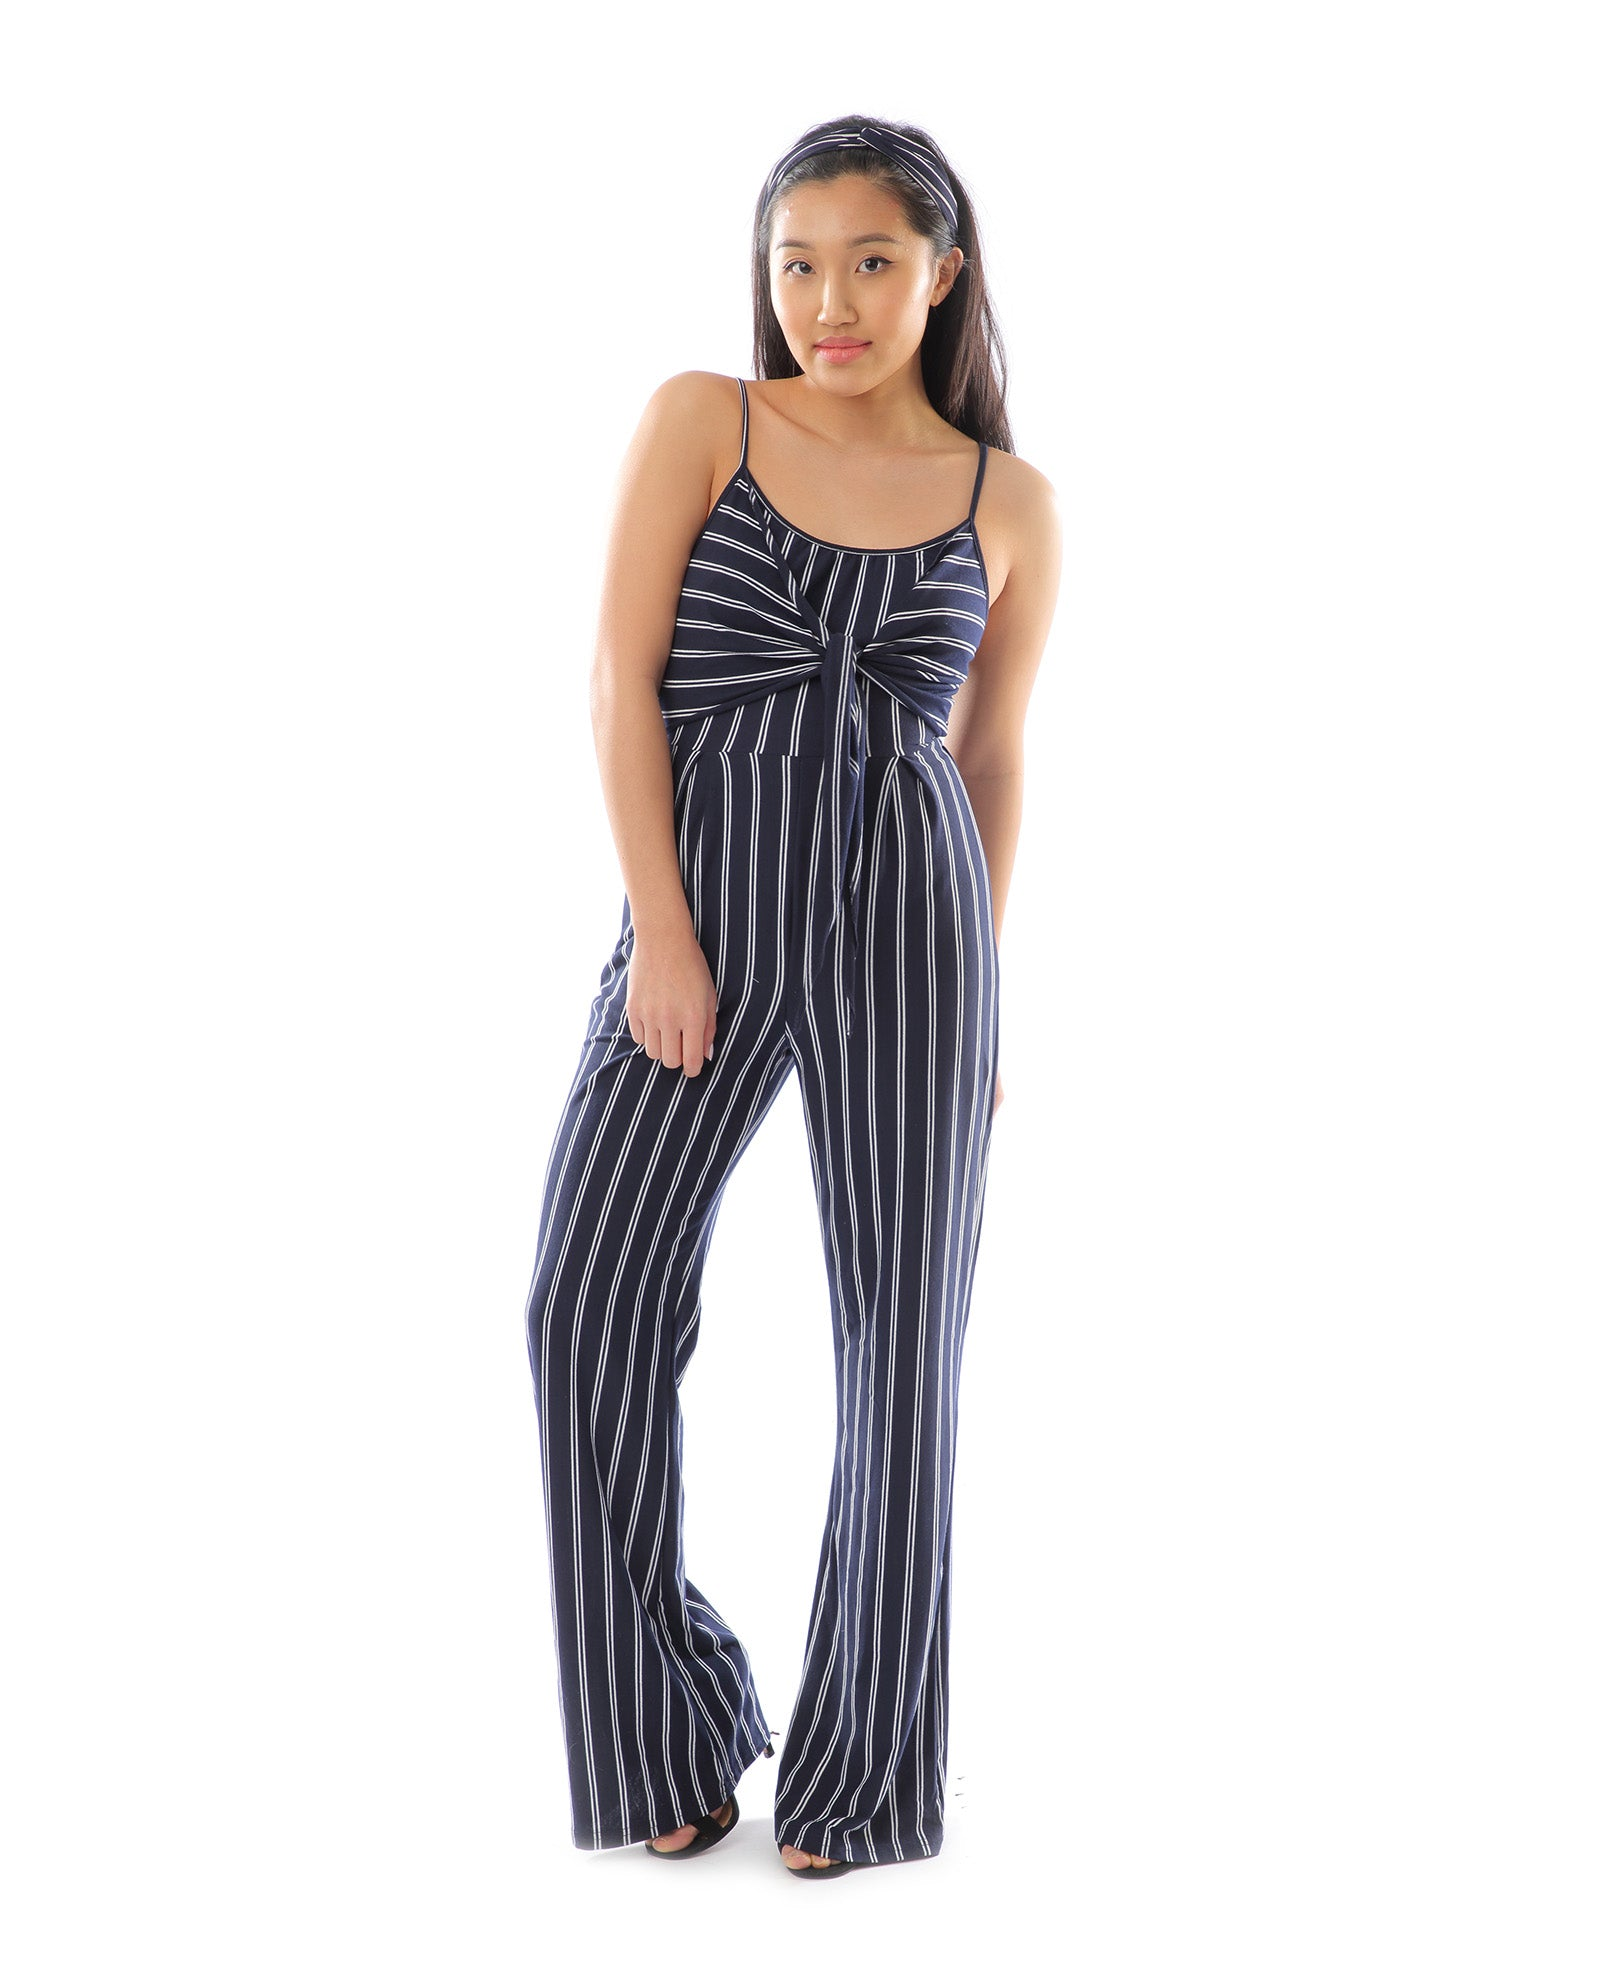 uk cheap sale order online 50% price Rent Navy & White Striped Jumpsuit | Hirestreetuk.com